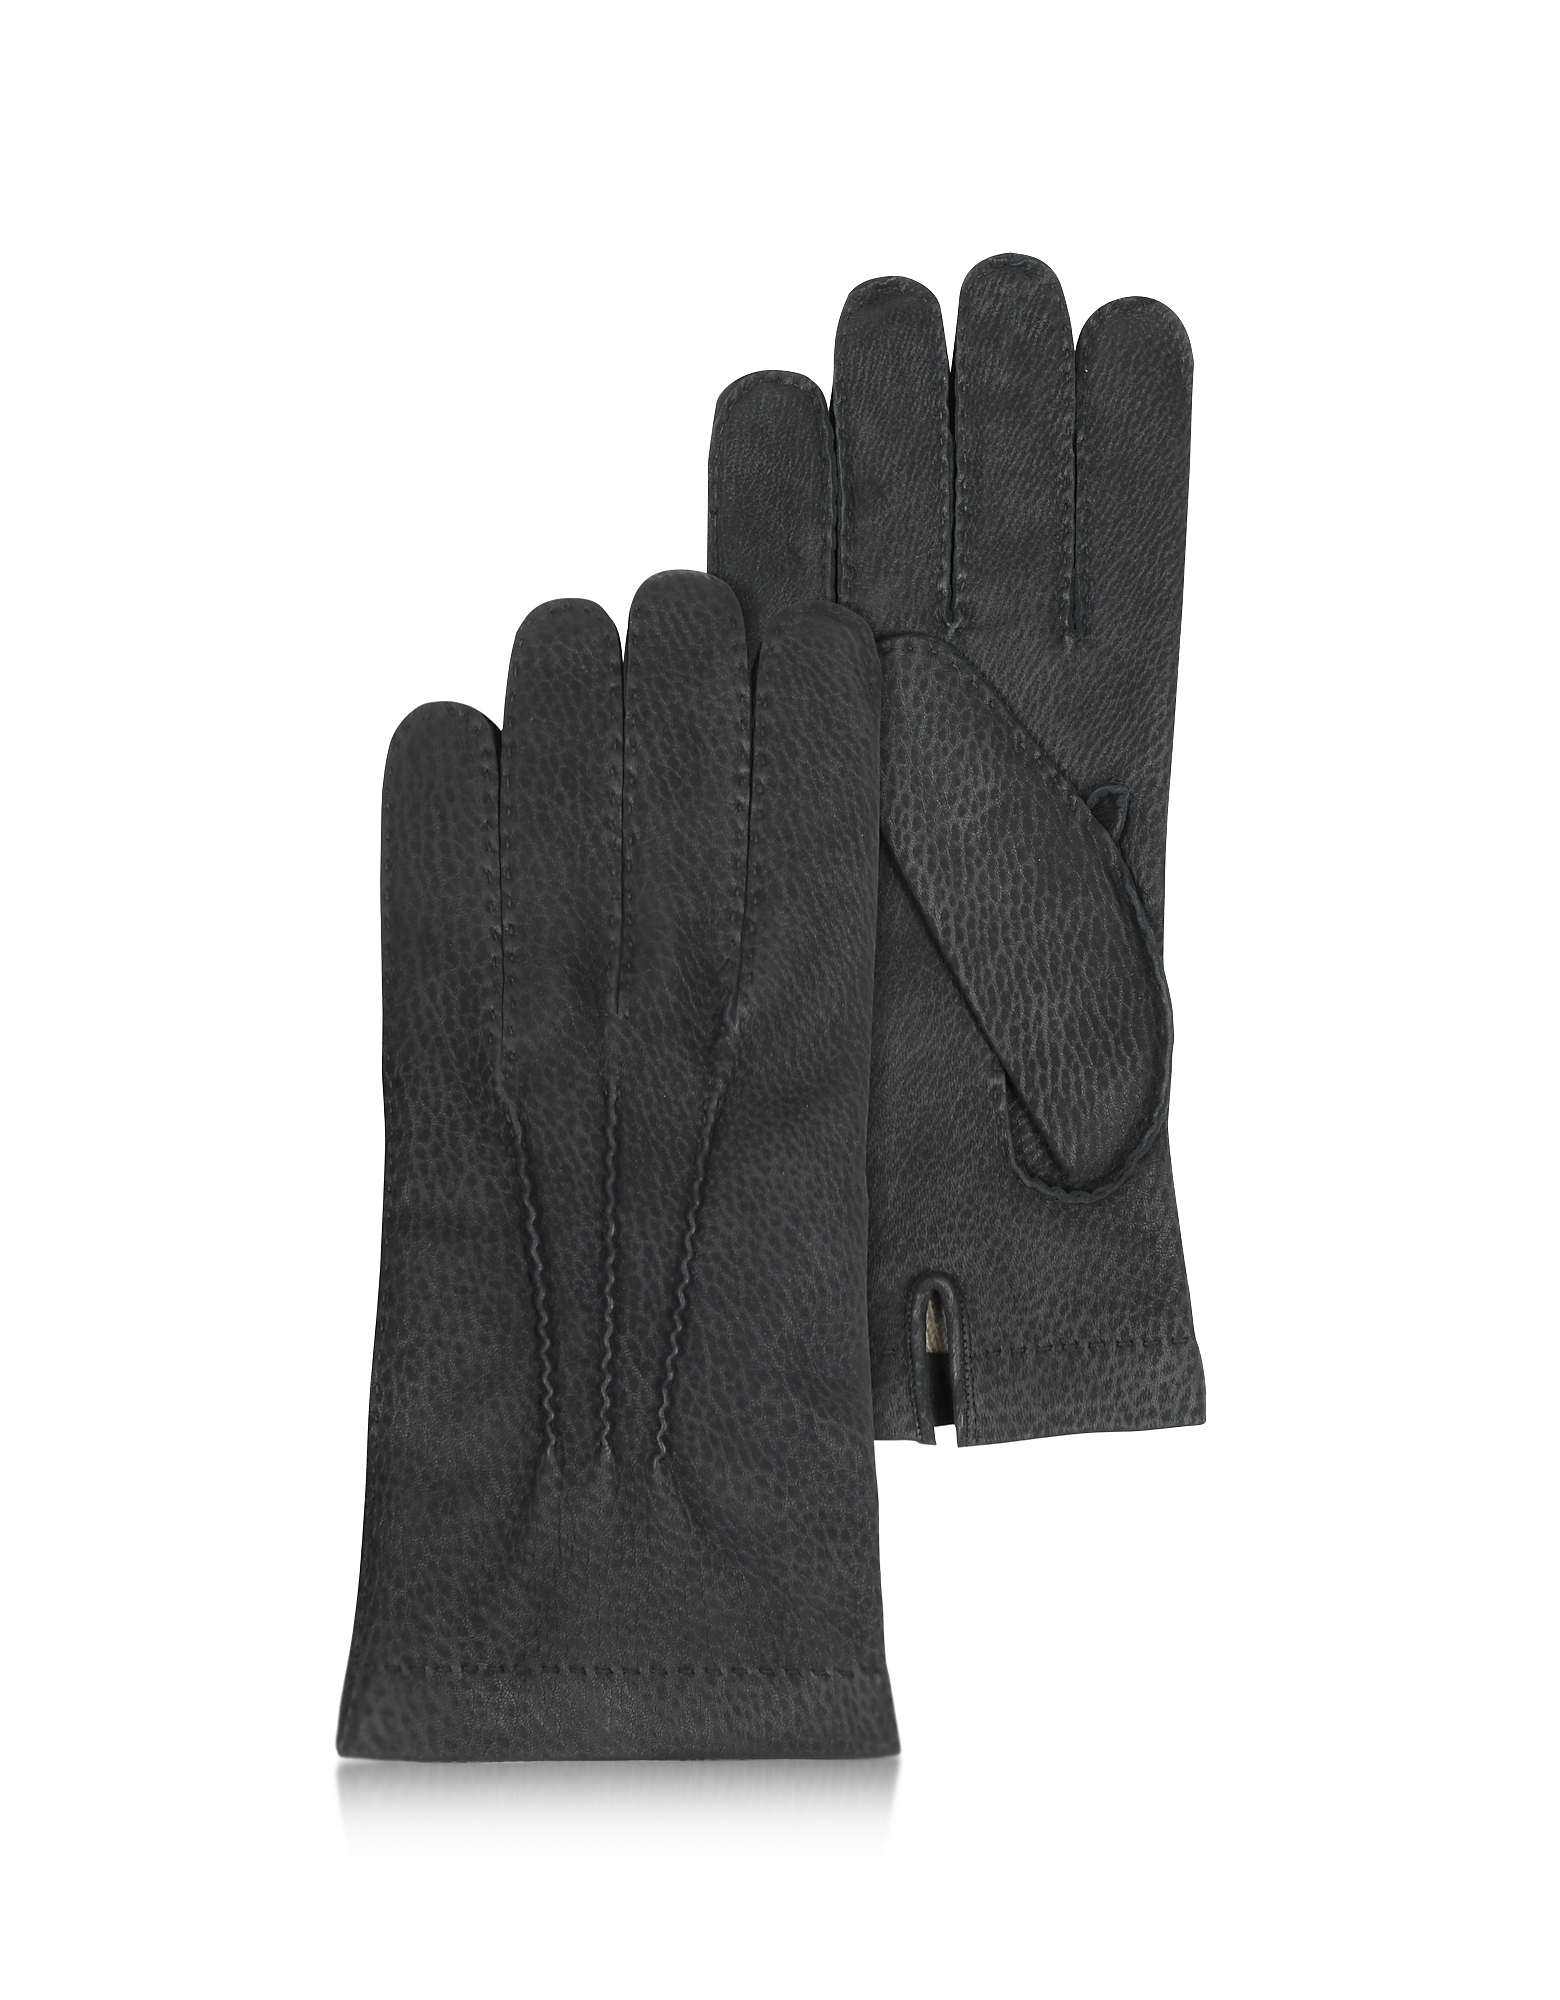 Forzieri Men's Gloves, Men's Cashmere Lined Black Italian Calf Leather Gloves